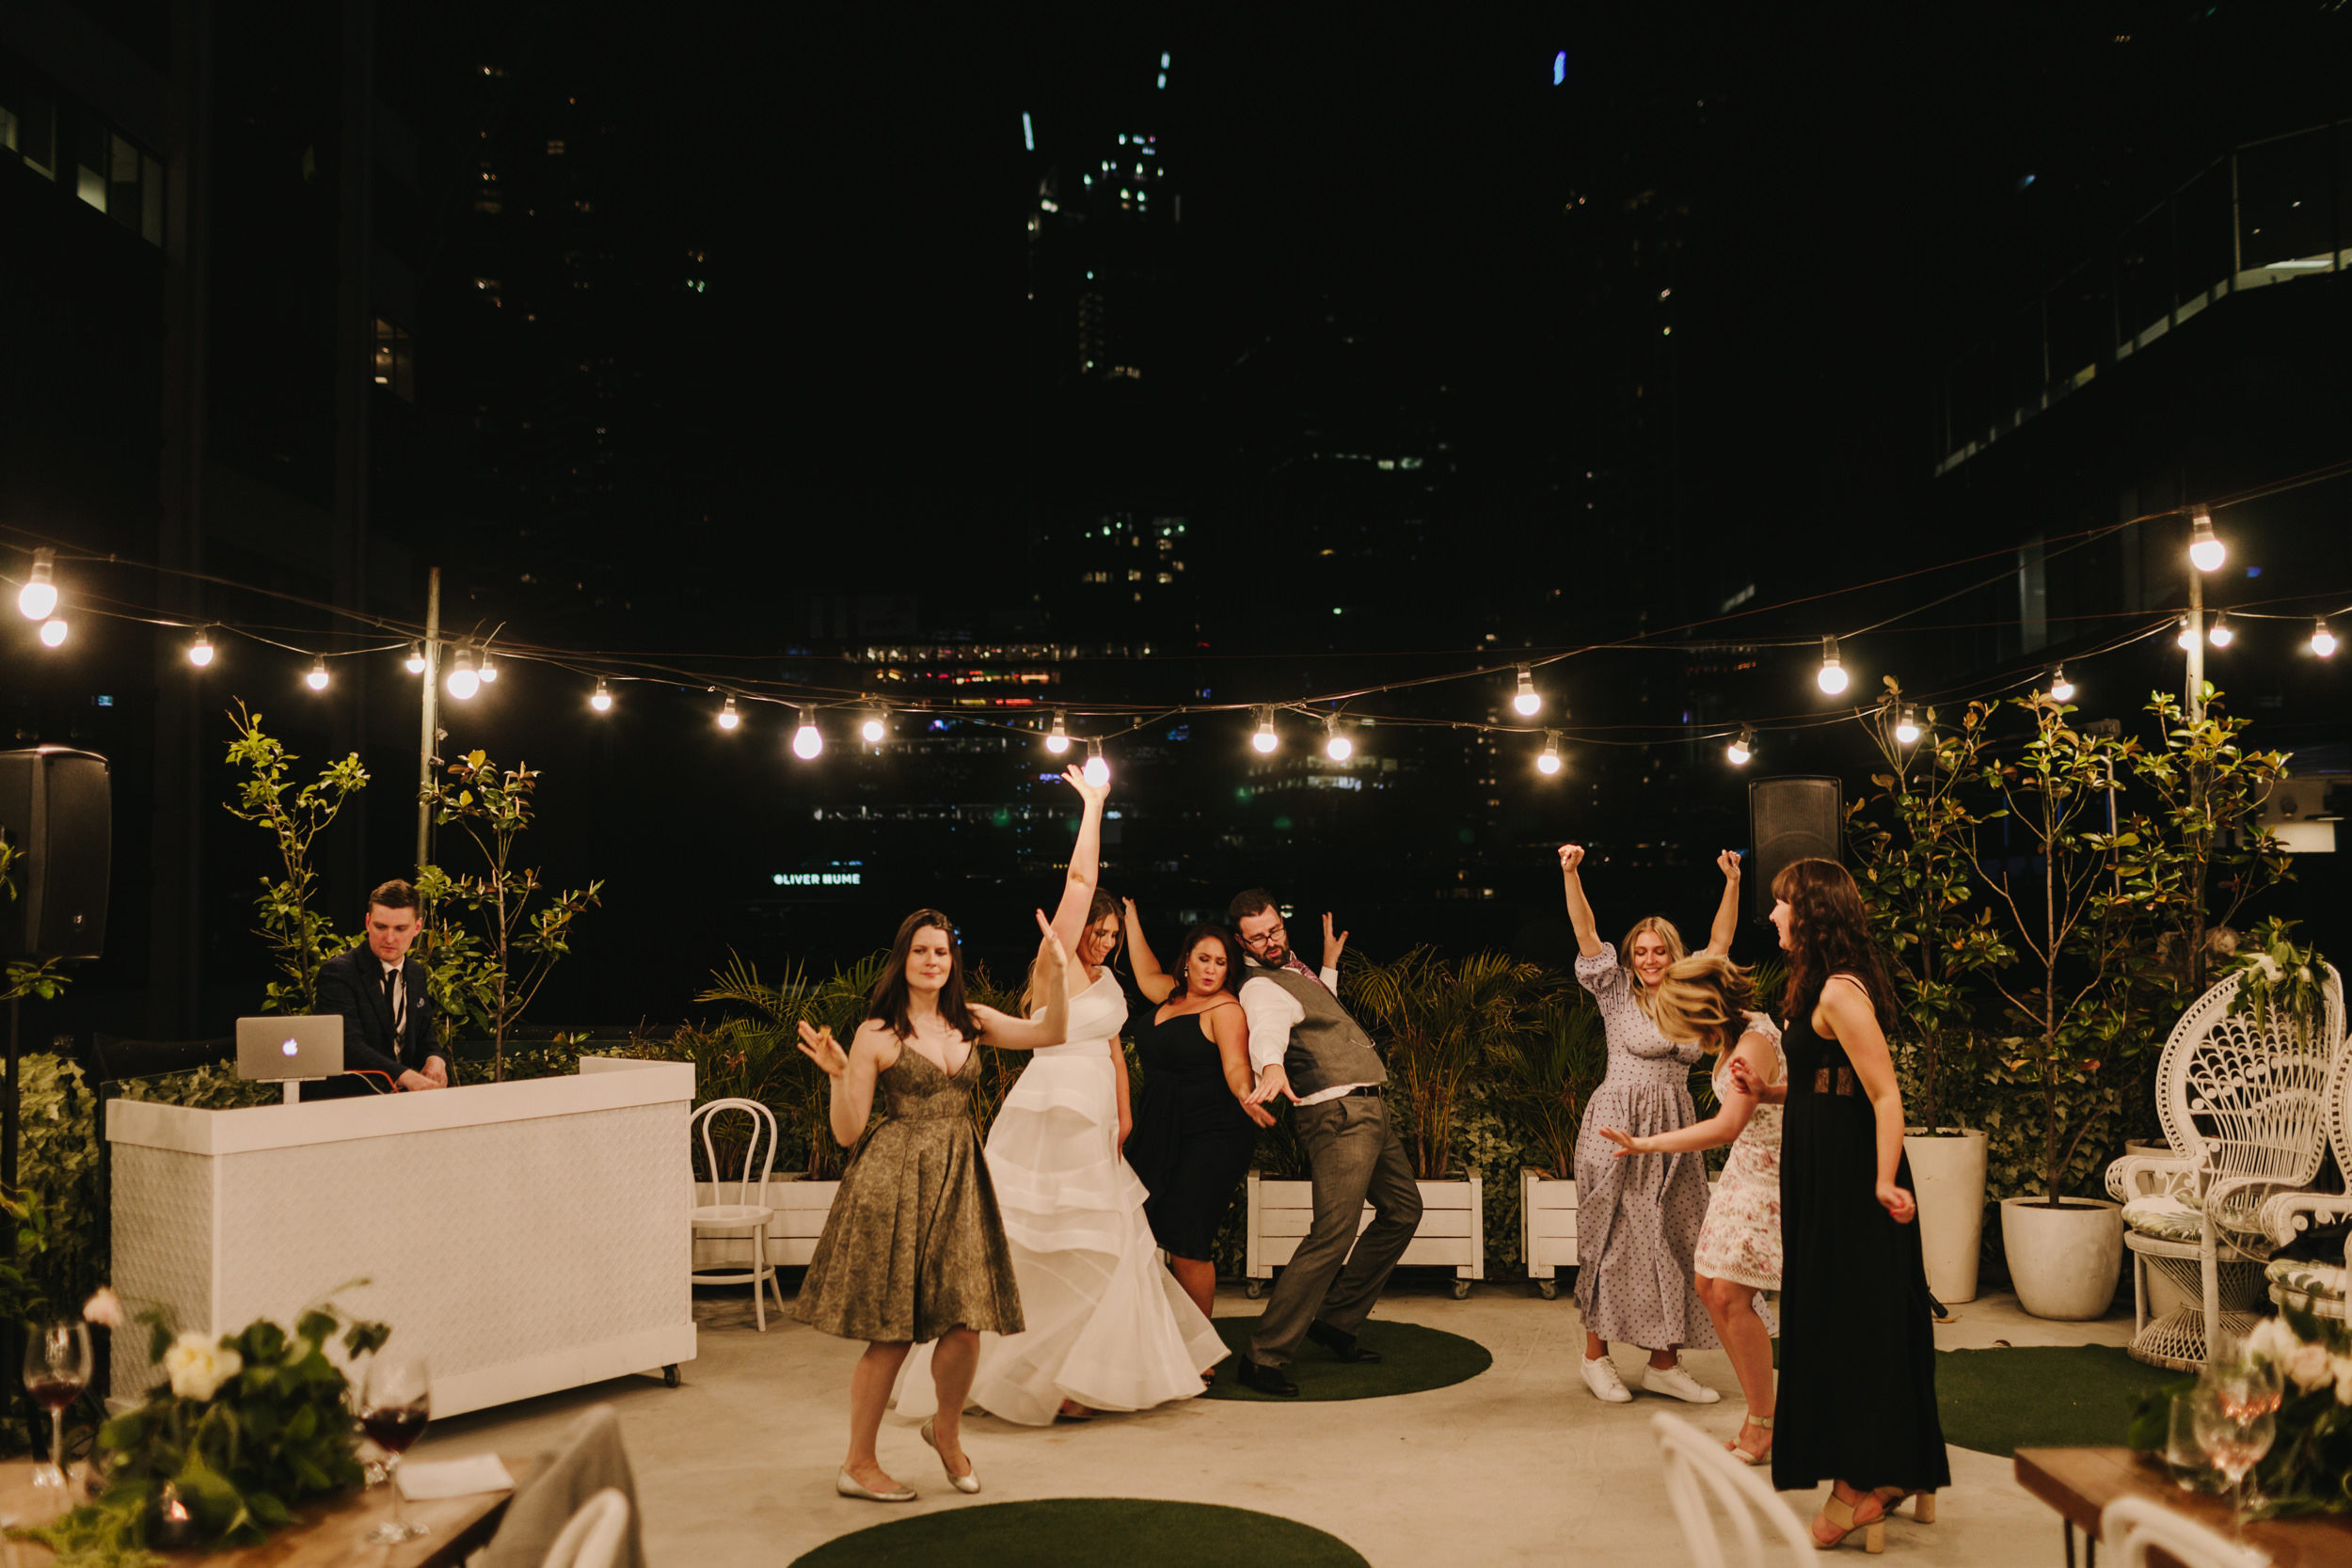 Melbourne_City_Rooftop_Wedding_Tyson_Brigette141.JPG